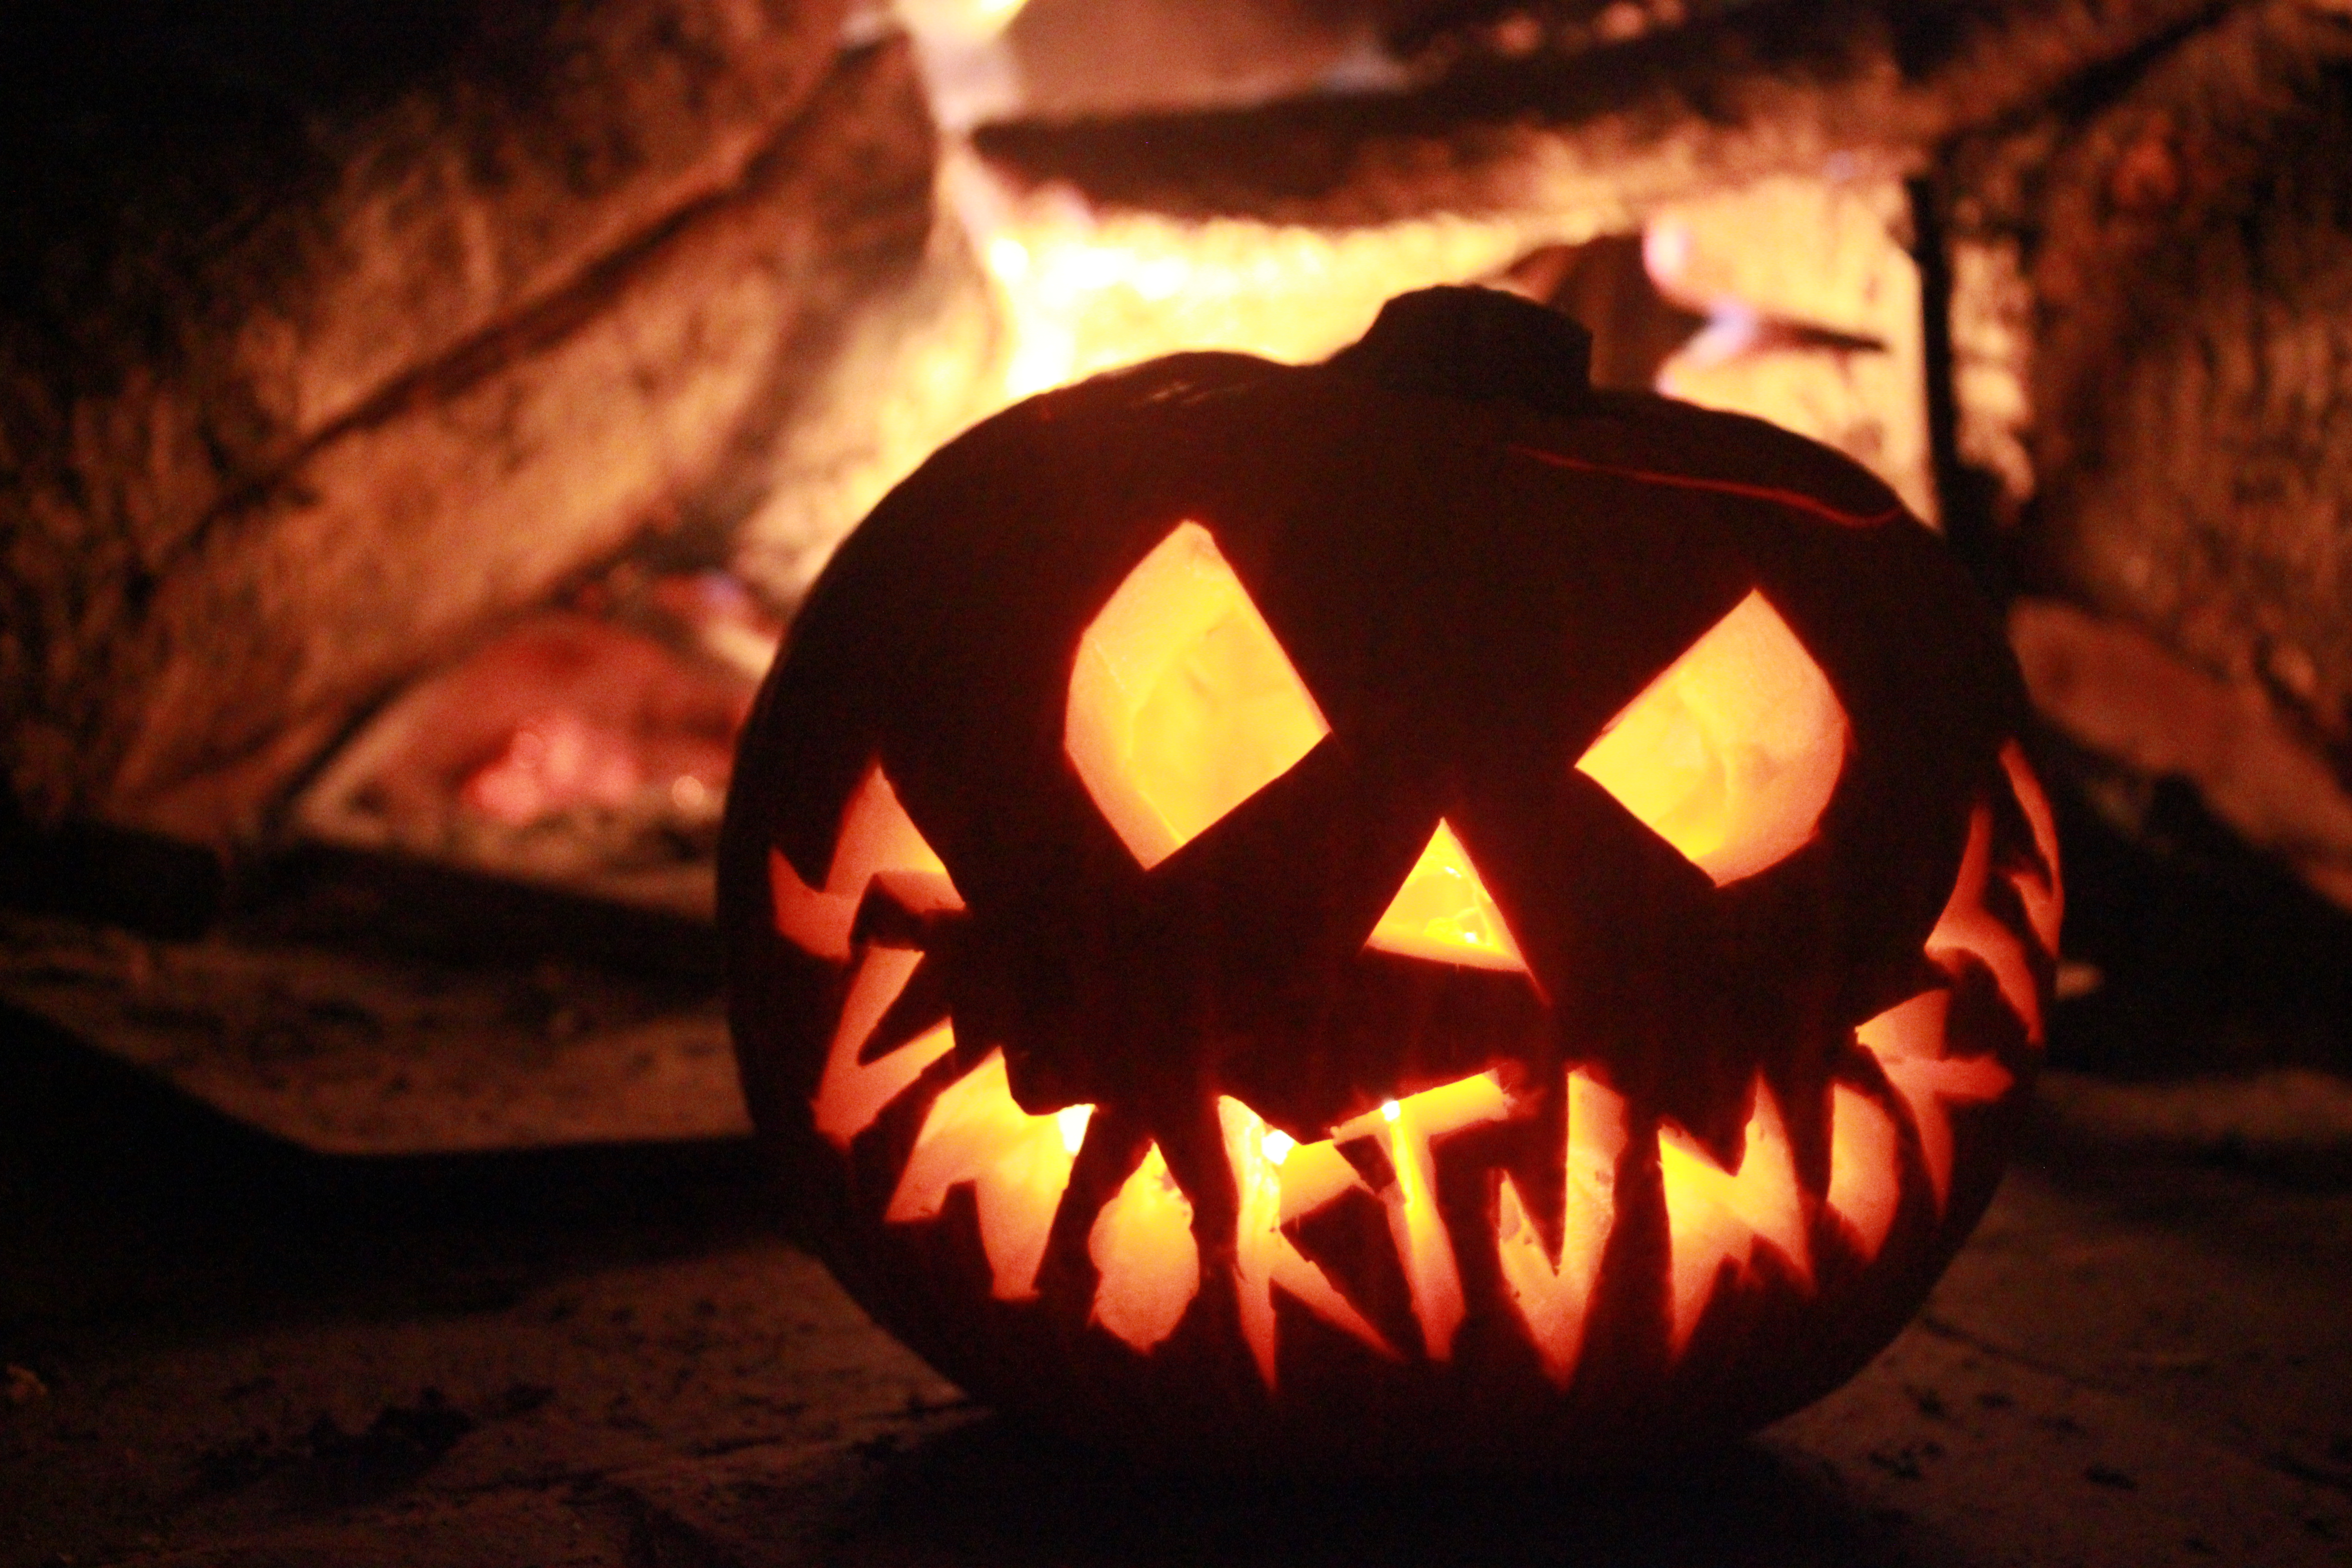 L'Halloween sardo: su mortu mortu o is animeddas